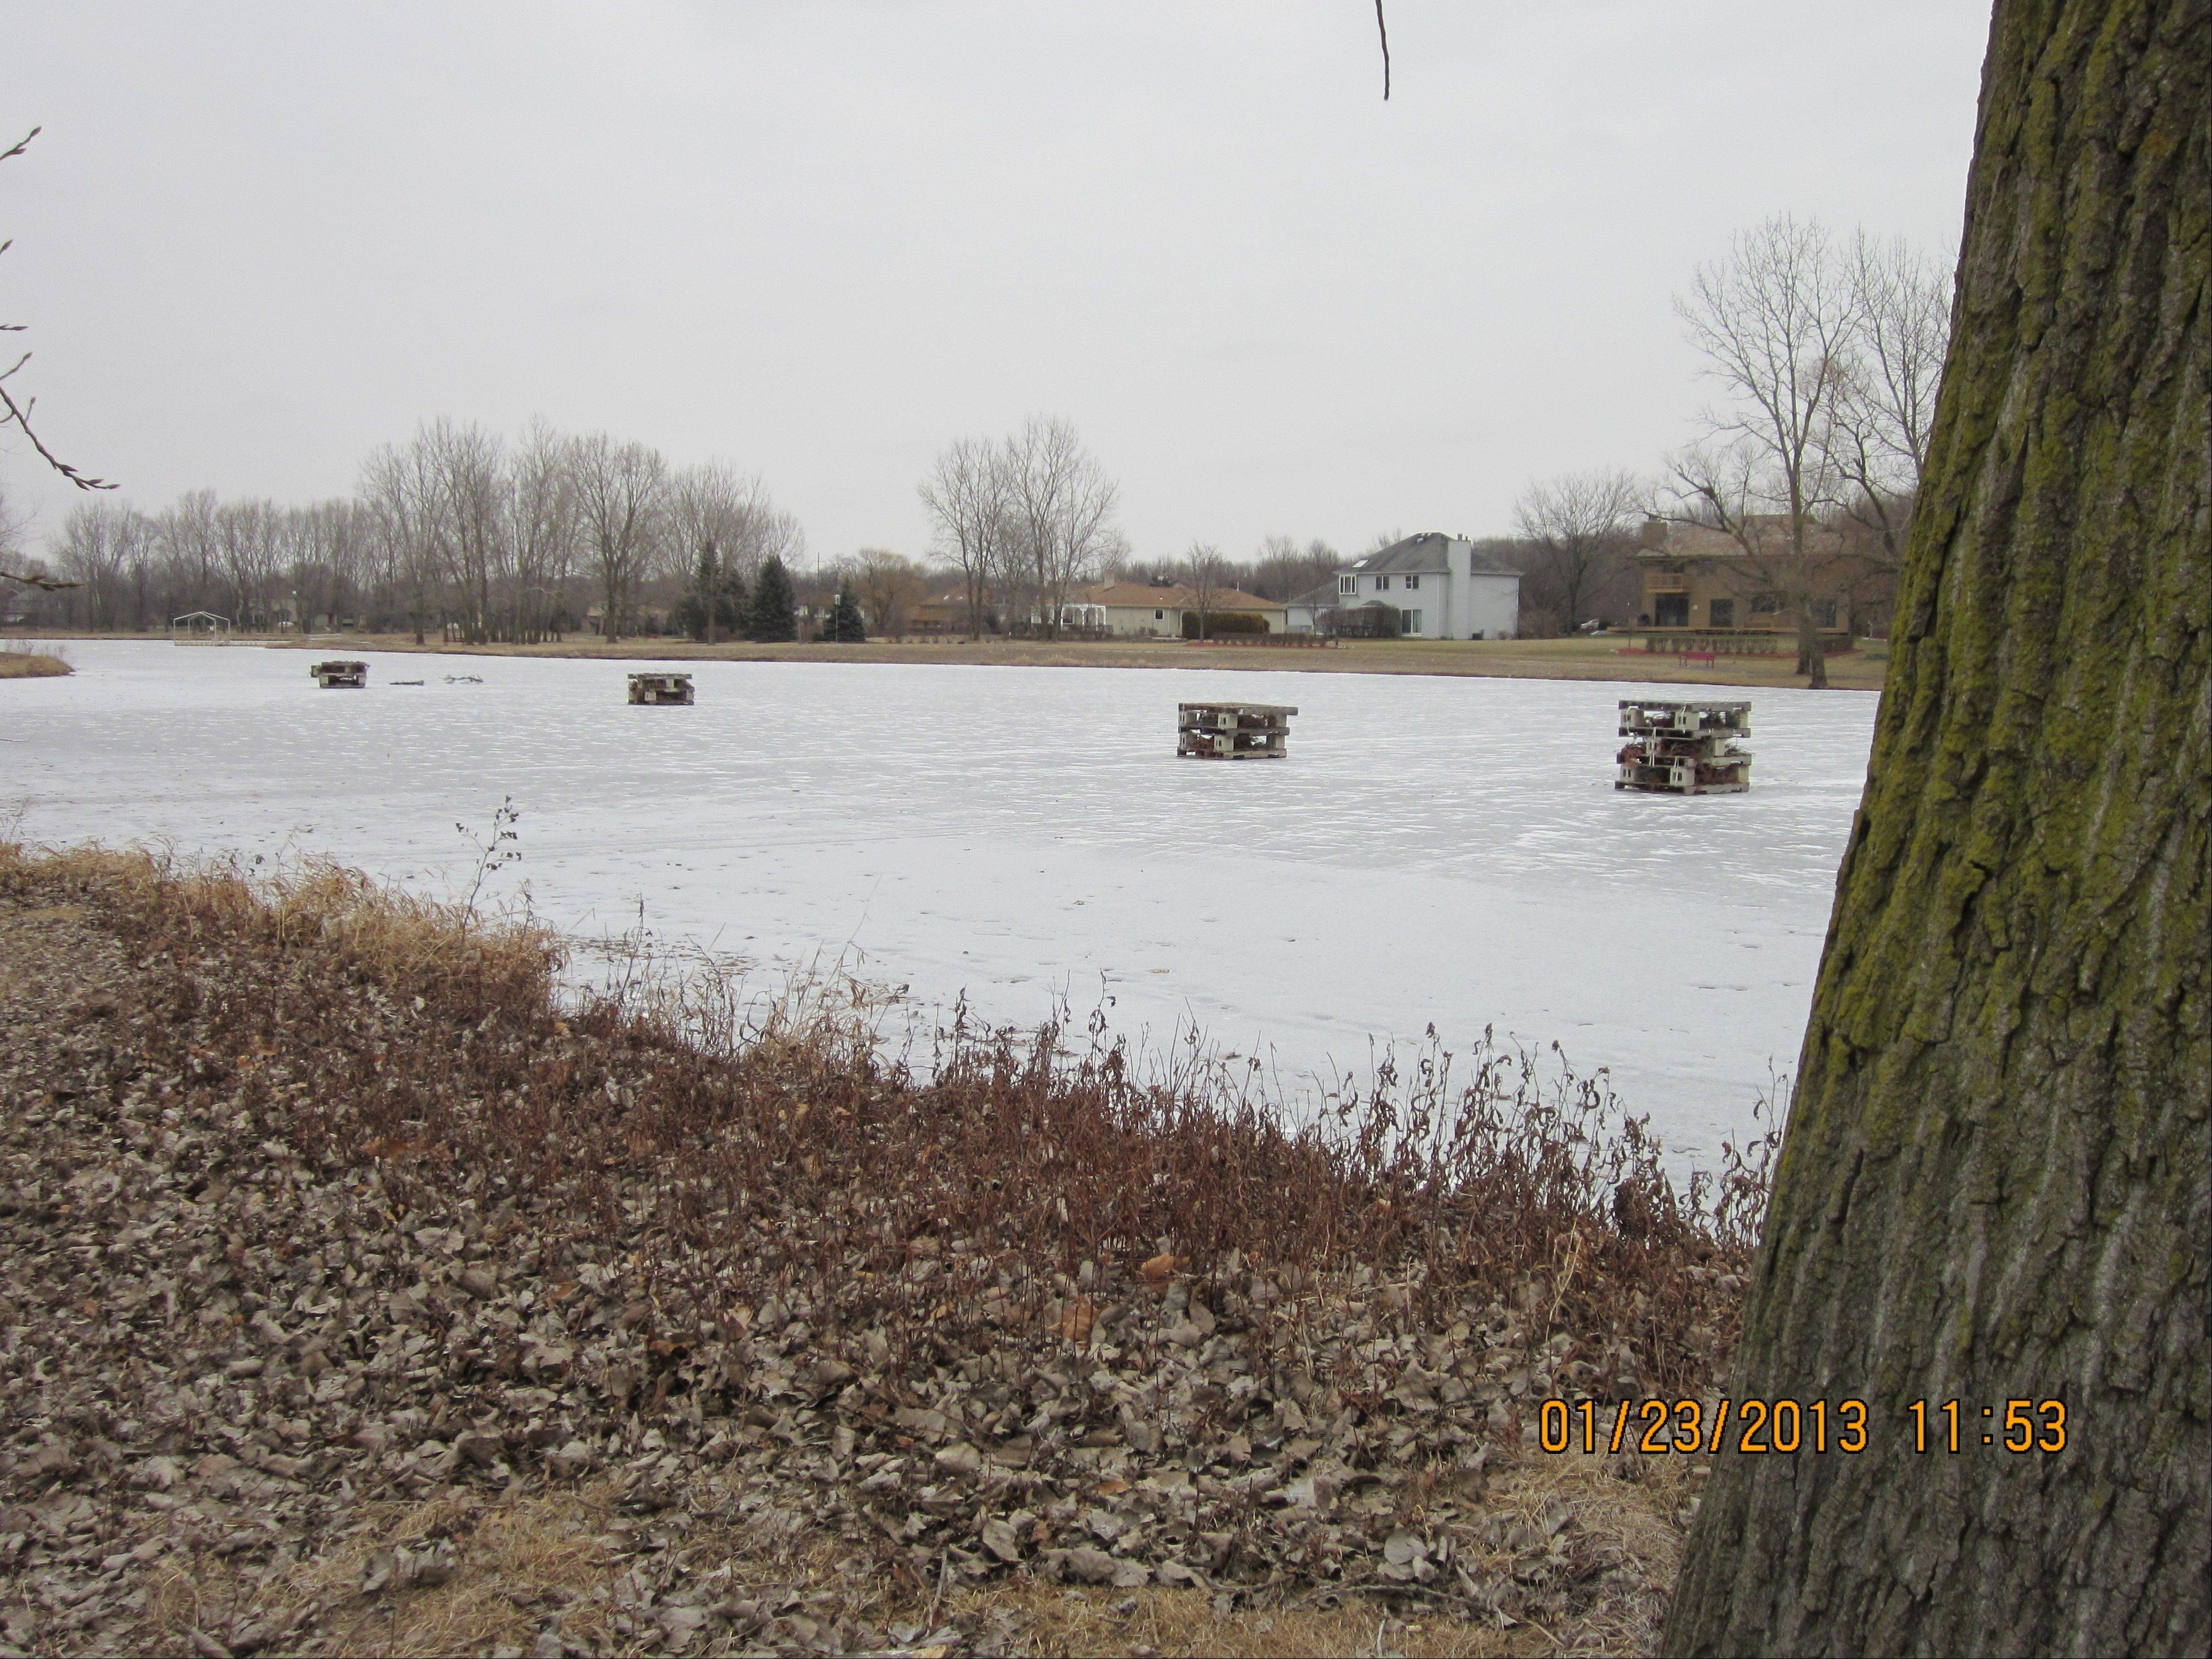 Fish cribs sit on the ice at Beaver Pond.